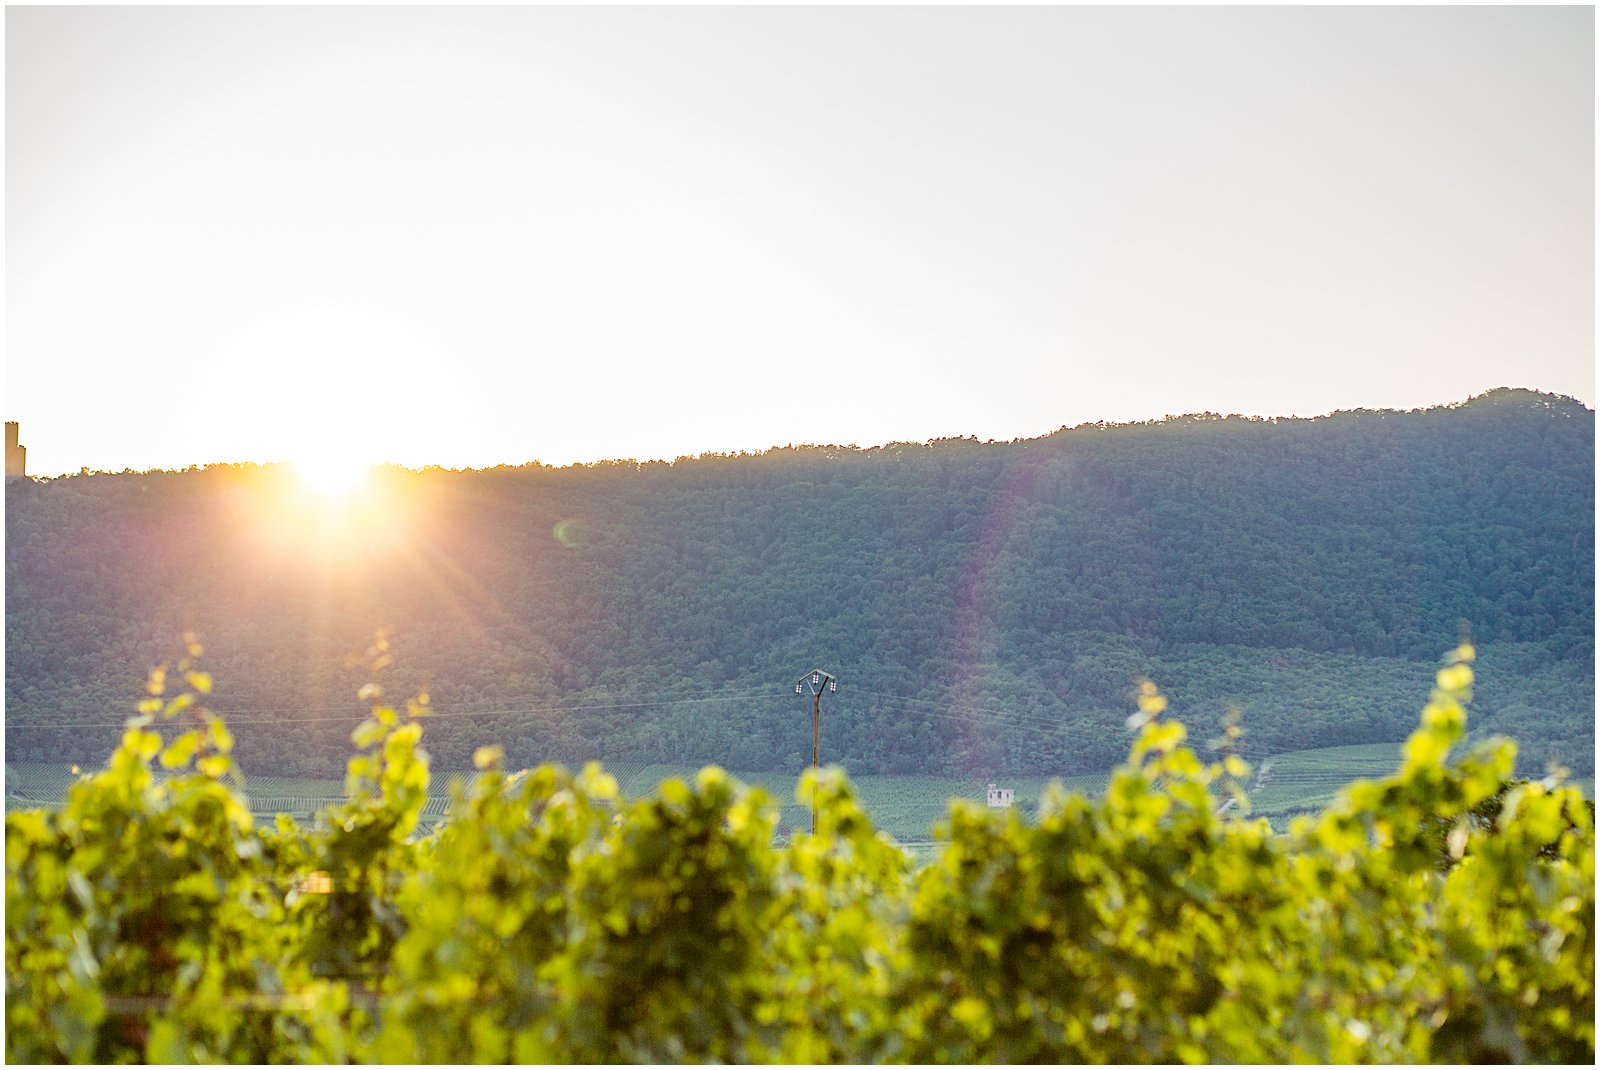 Helena Woods photographs Sunset in Alsace France vineyards and mountains